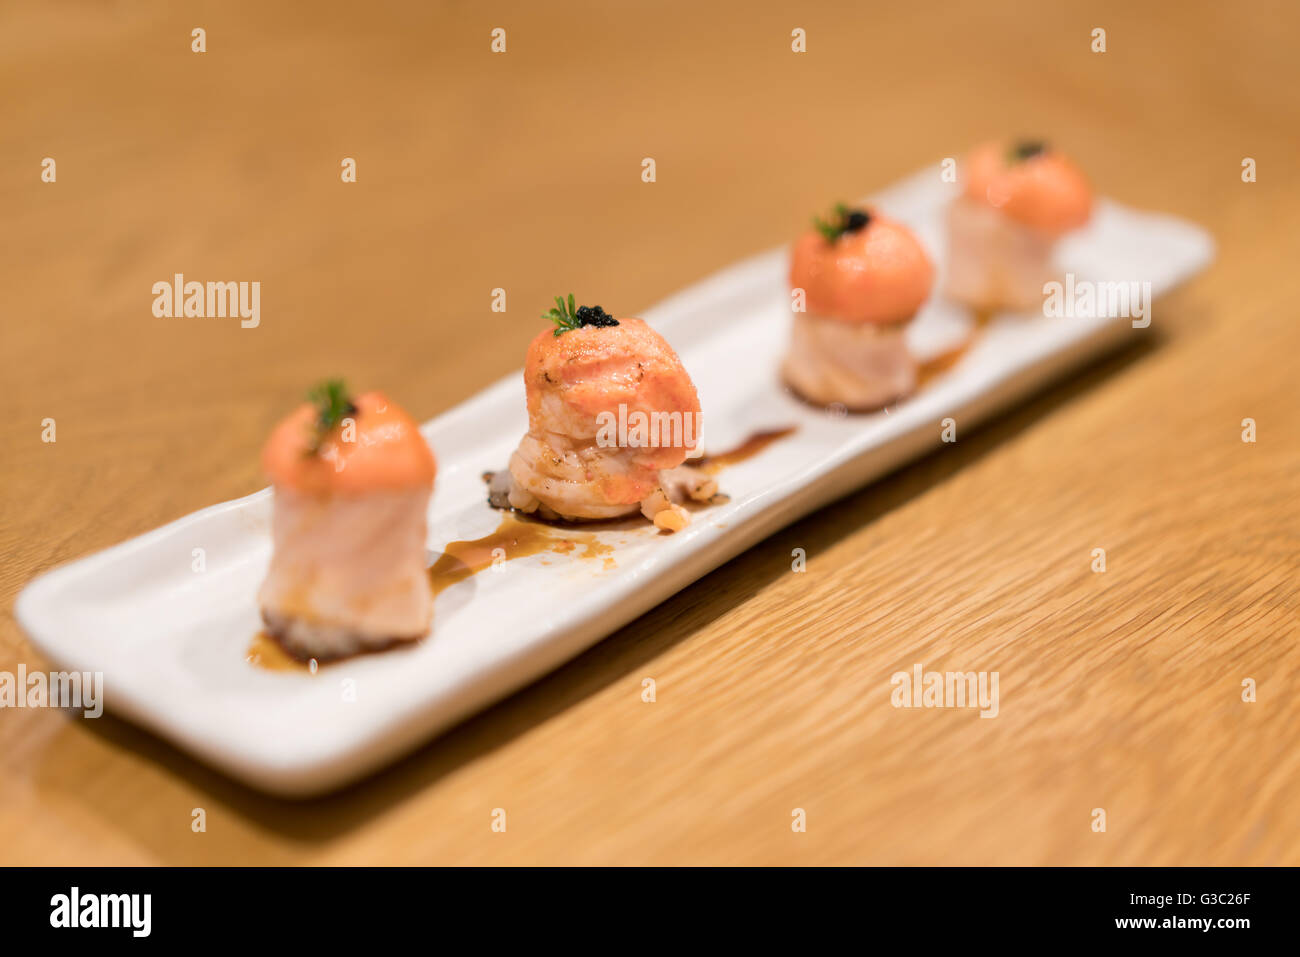 Salmon sushi in modern fusion style, depth of field effect - Stock Image